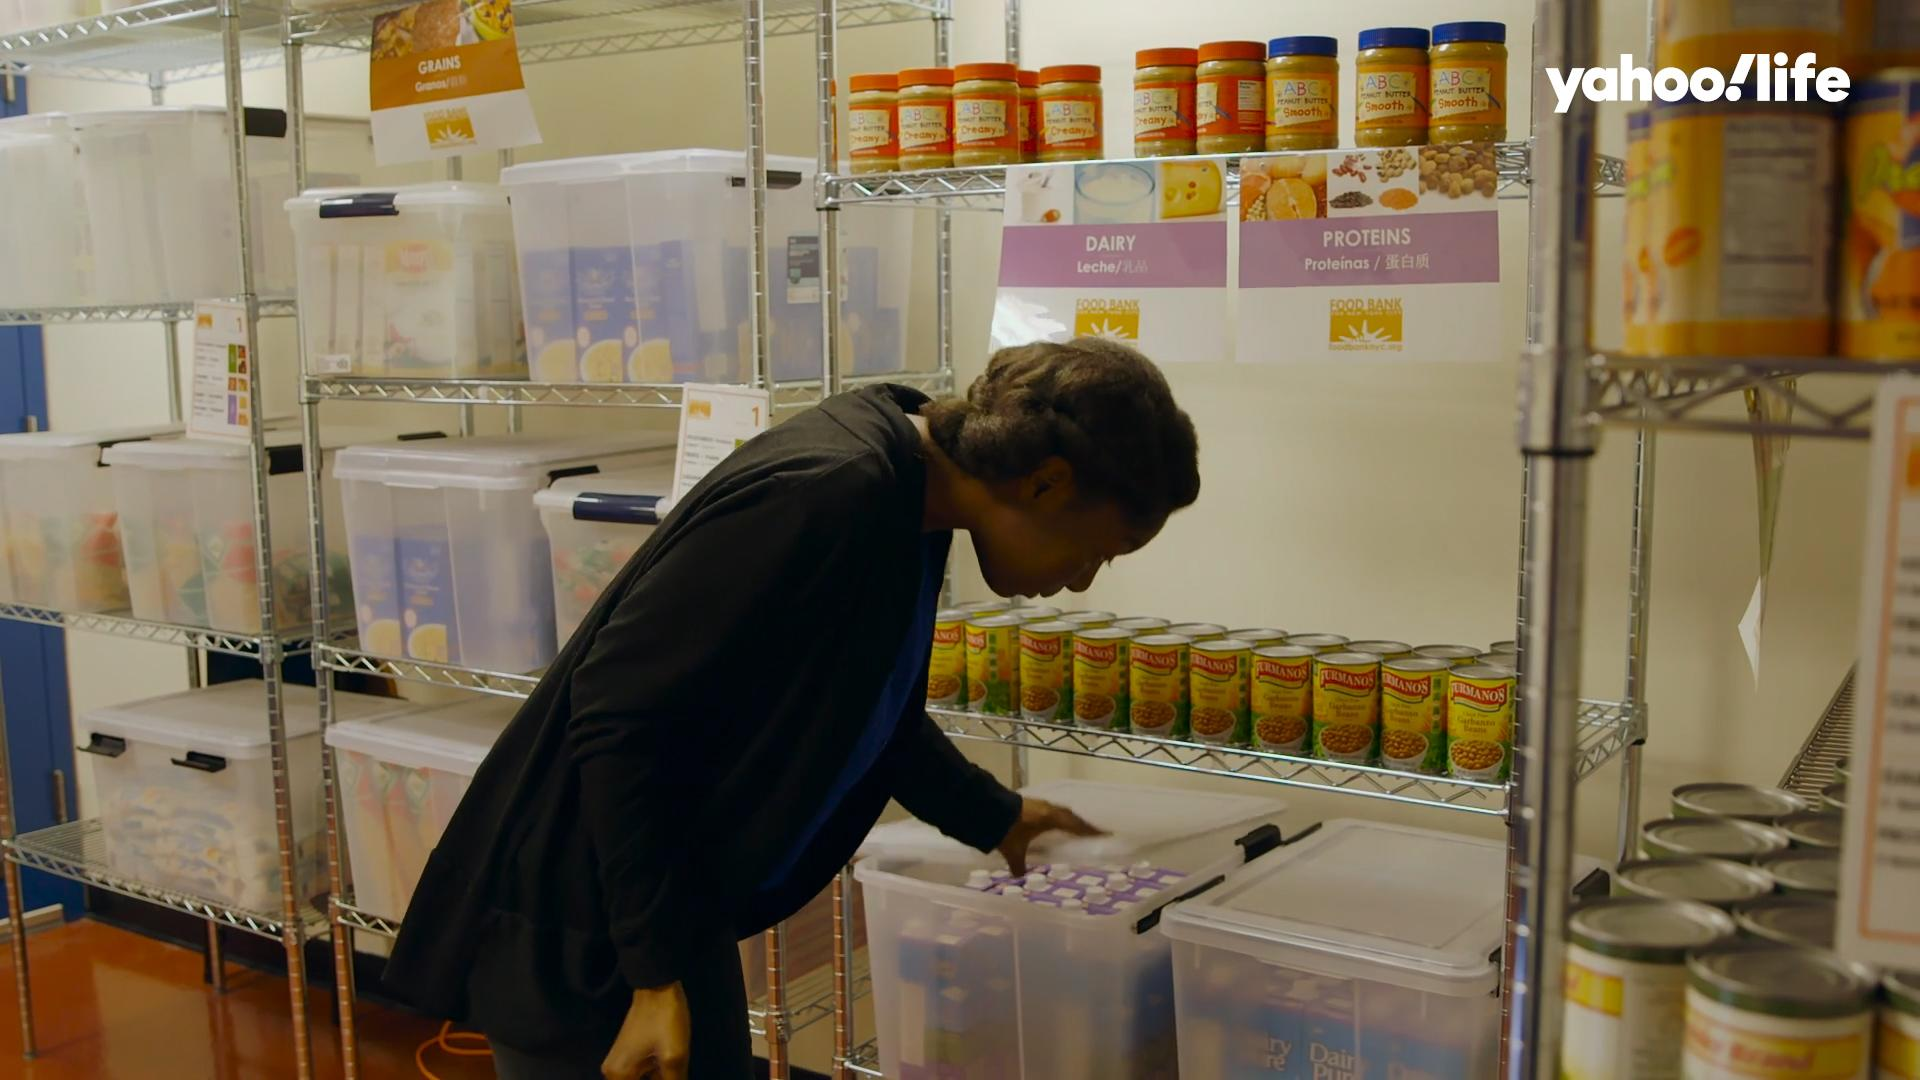 Some of the over 650 food pantries on campuses also shut down or scaled back during the coronavirus pandemic, leaving many students in need with few options for food. (Photo credit: Soledad O'Brien Productions)